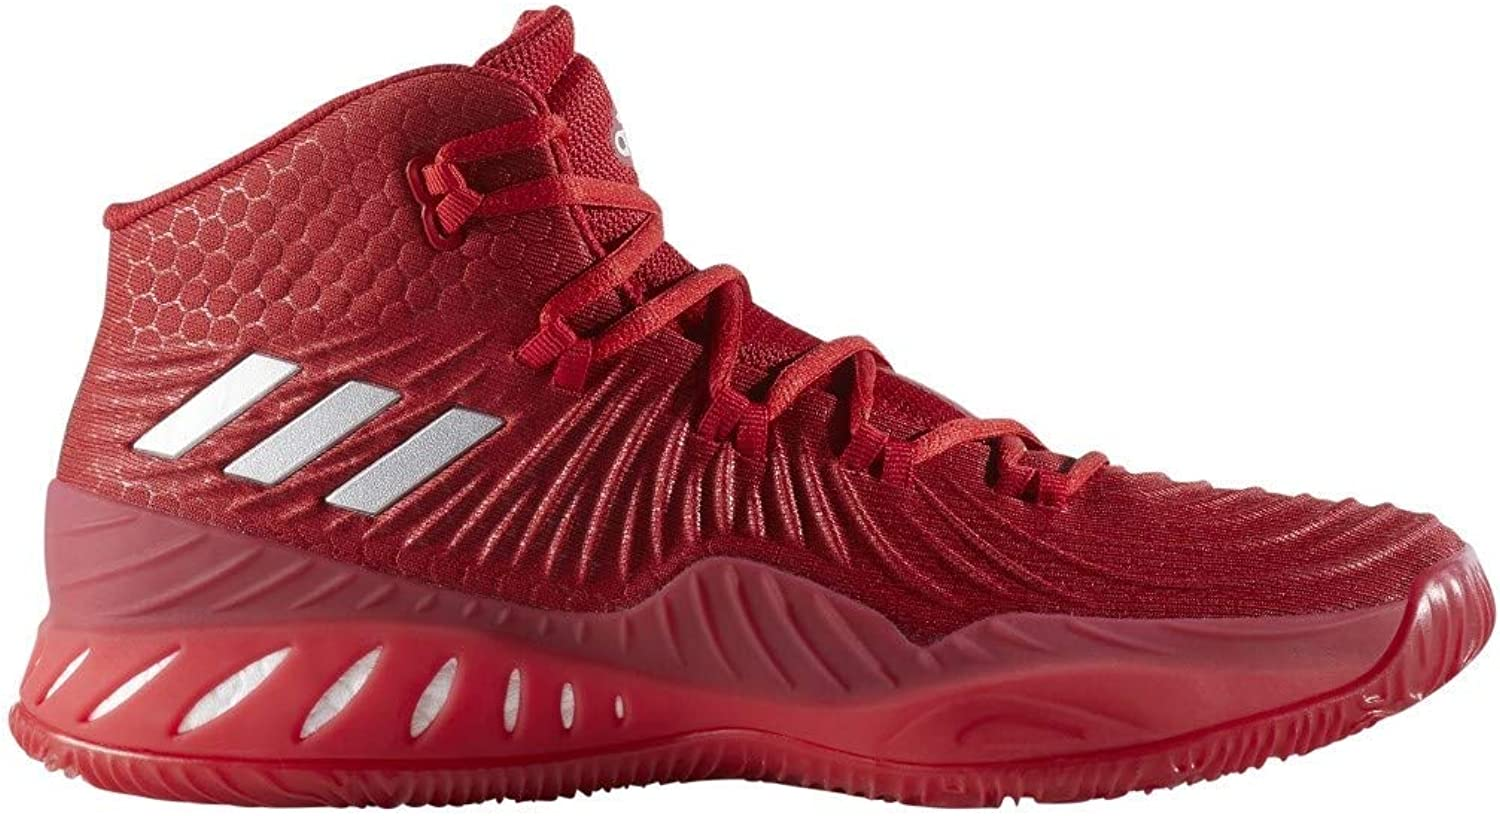 Adidas Crazy Explosive 2017 shoes Men's Basketball